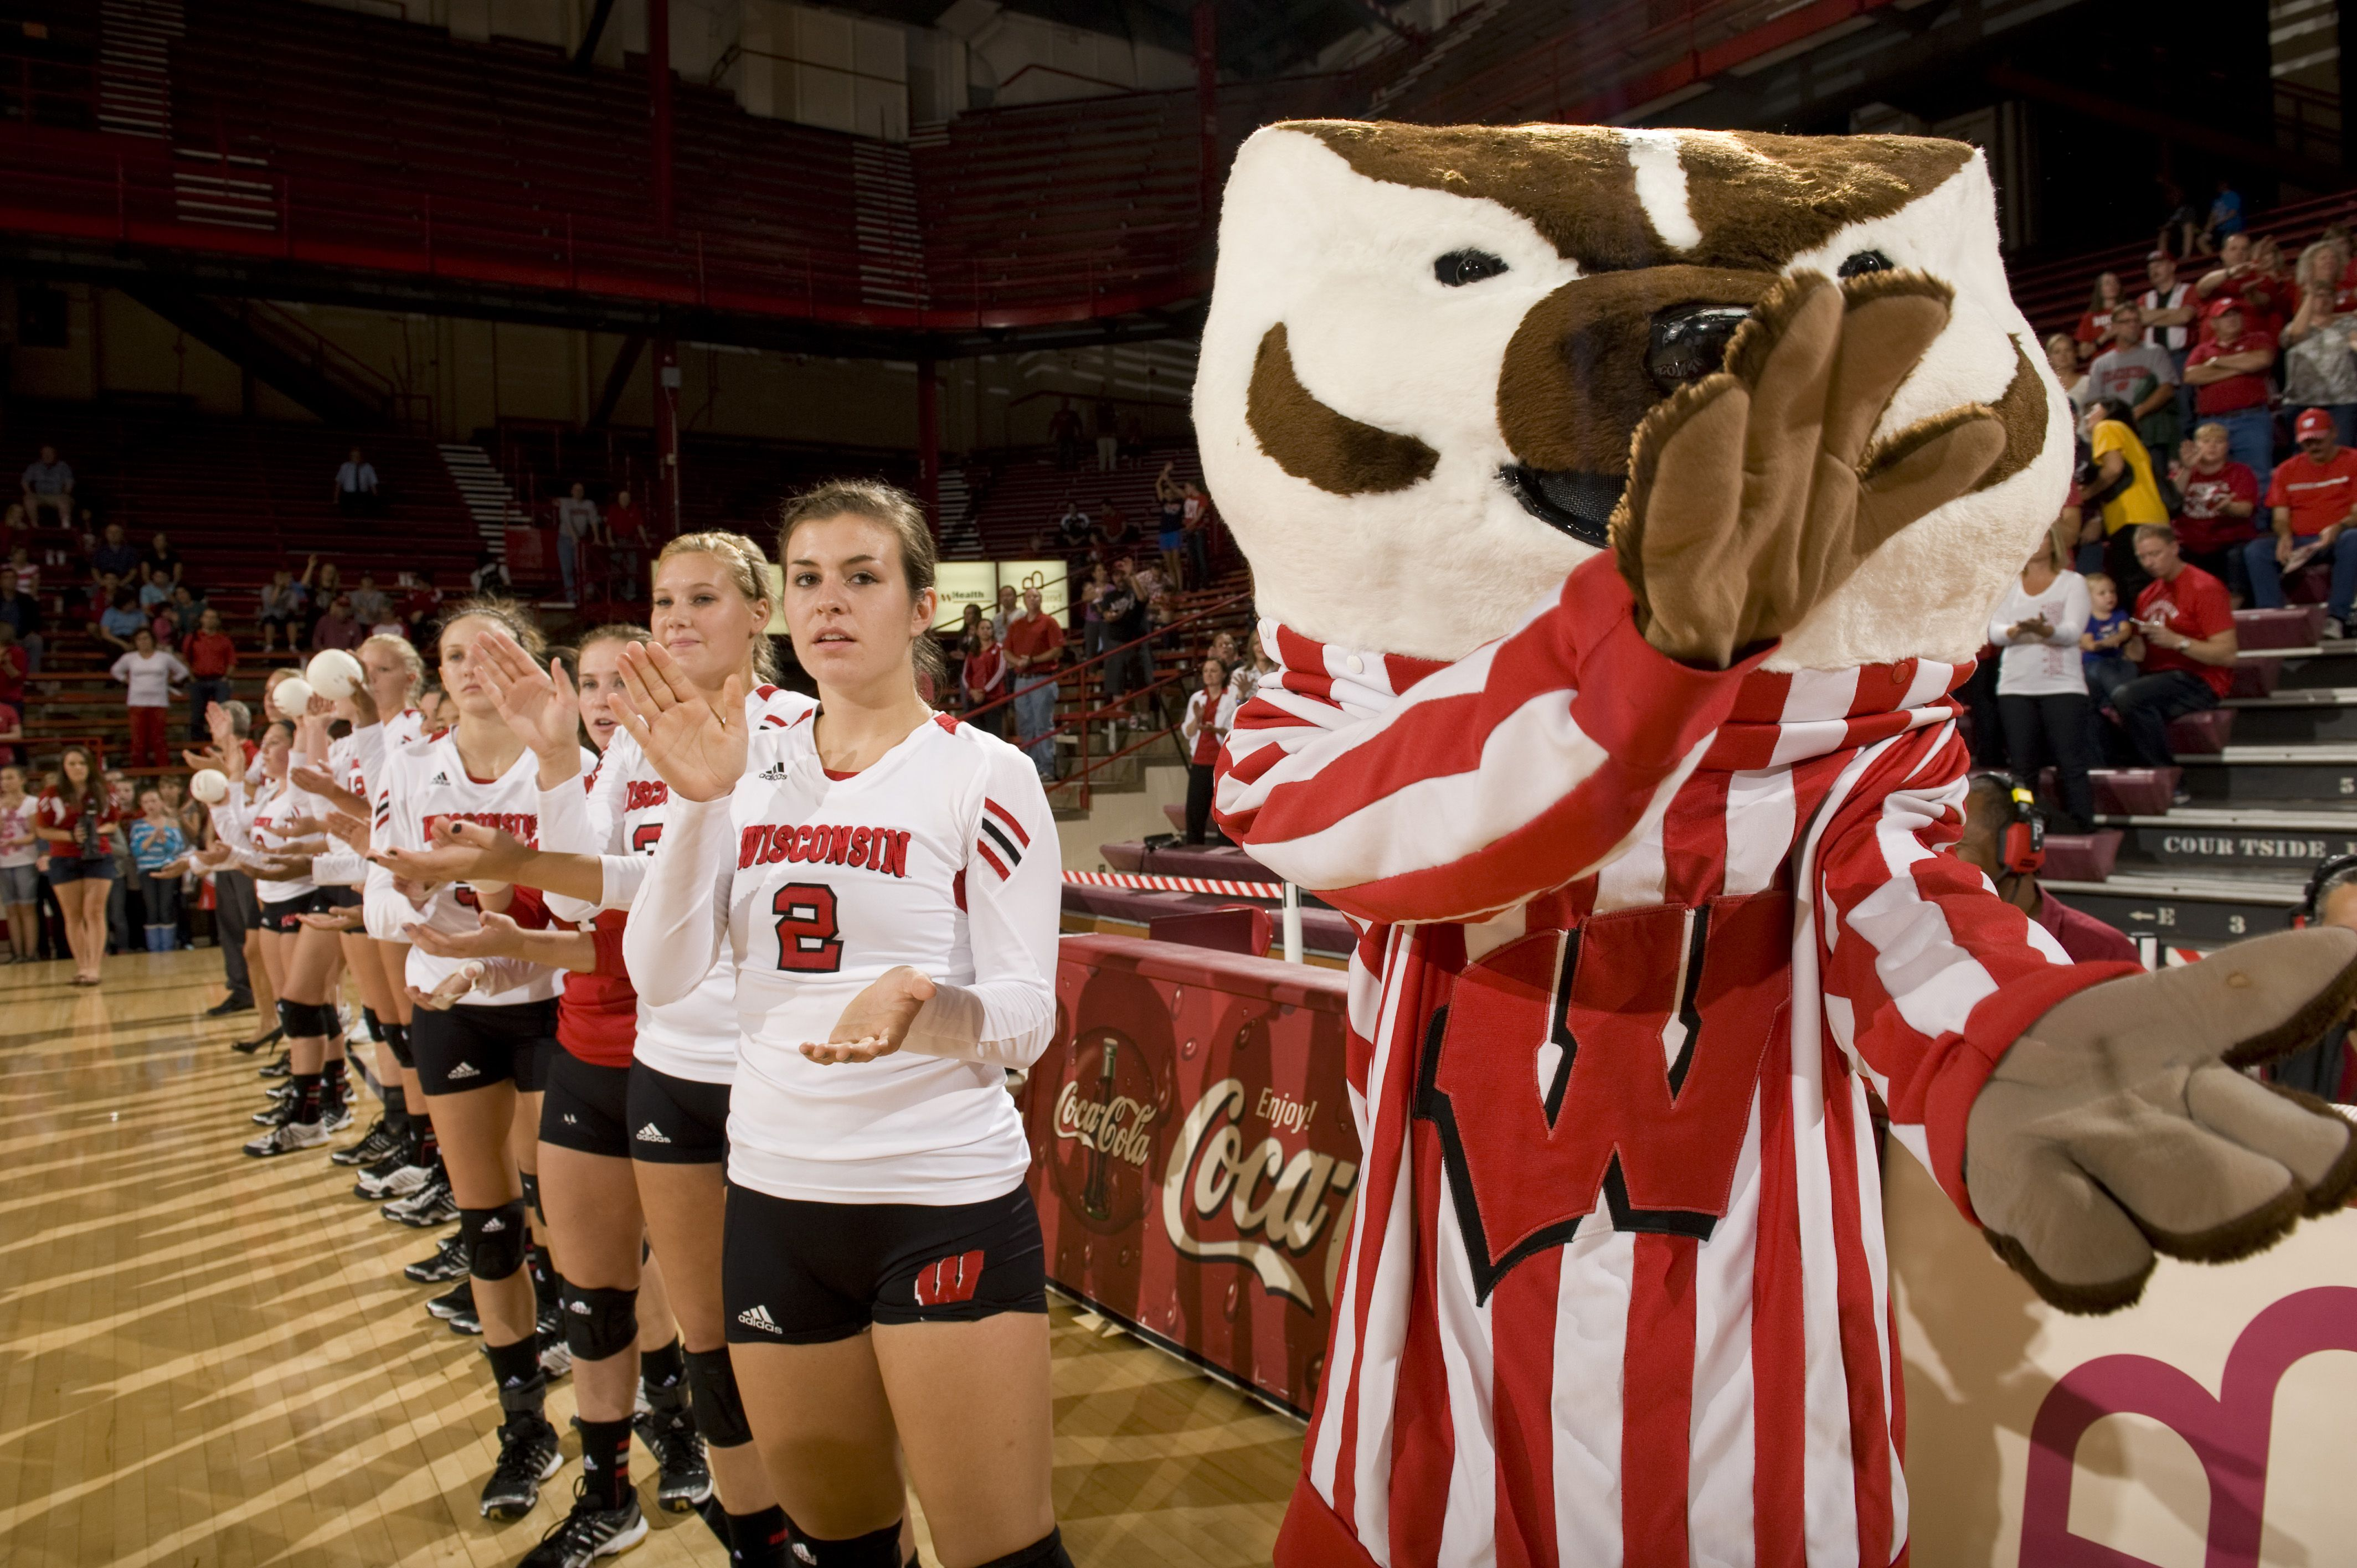 Bucky Leads The Team In Welcoming Its Opponent During Introductions At The Field House Badger Volleyball Wisconsin Badgers University Of Wisconsin